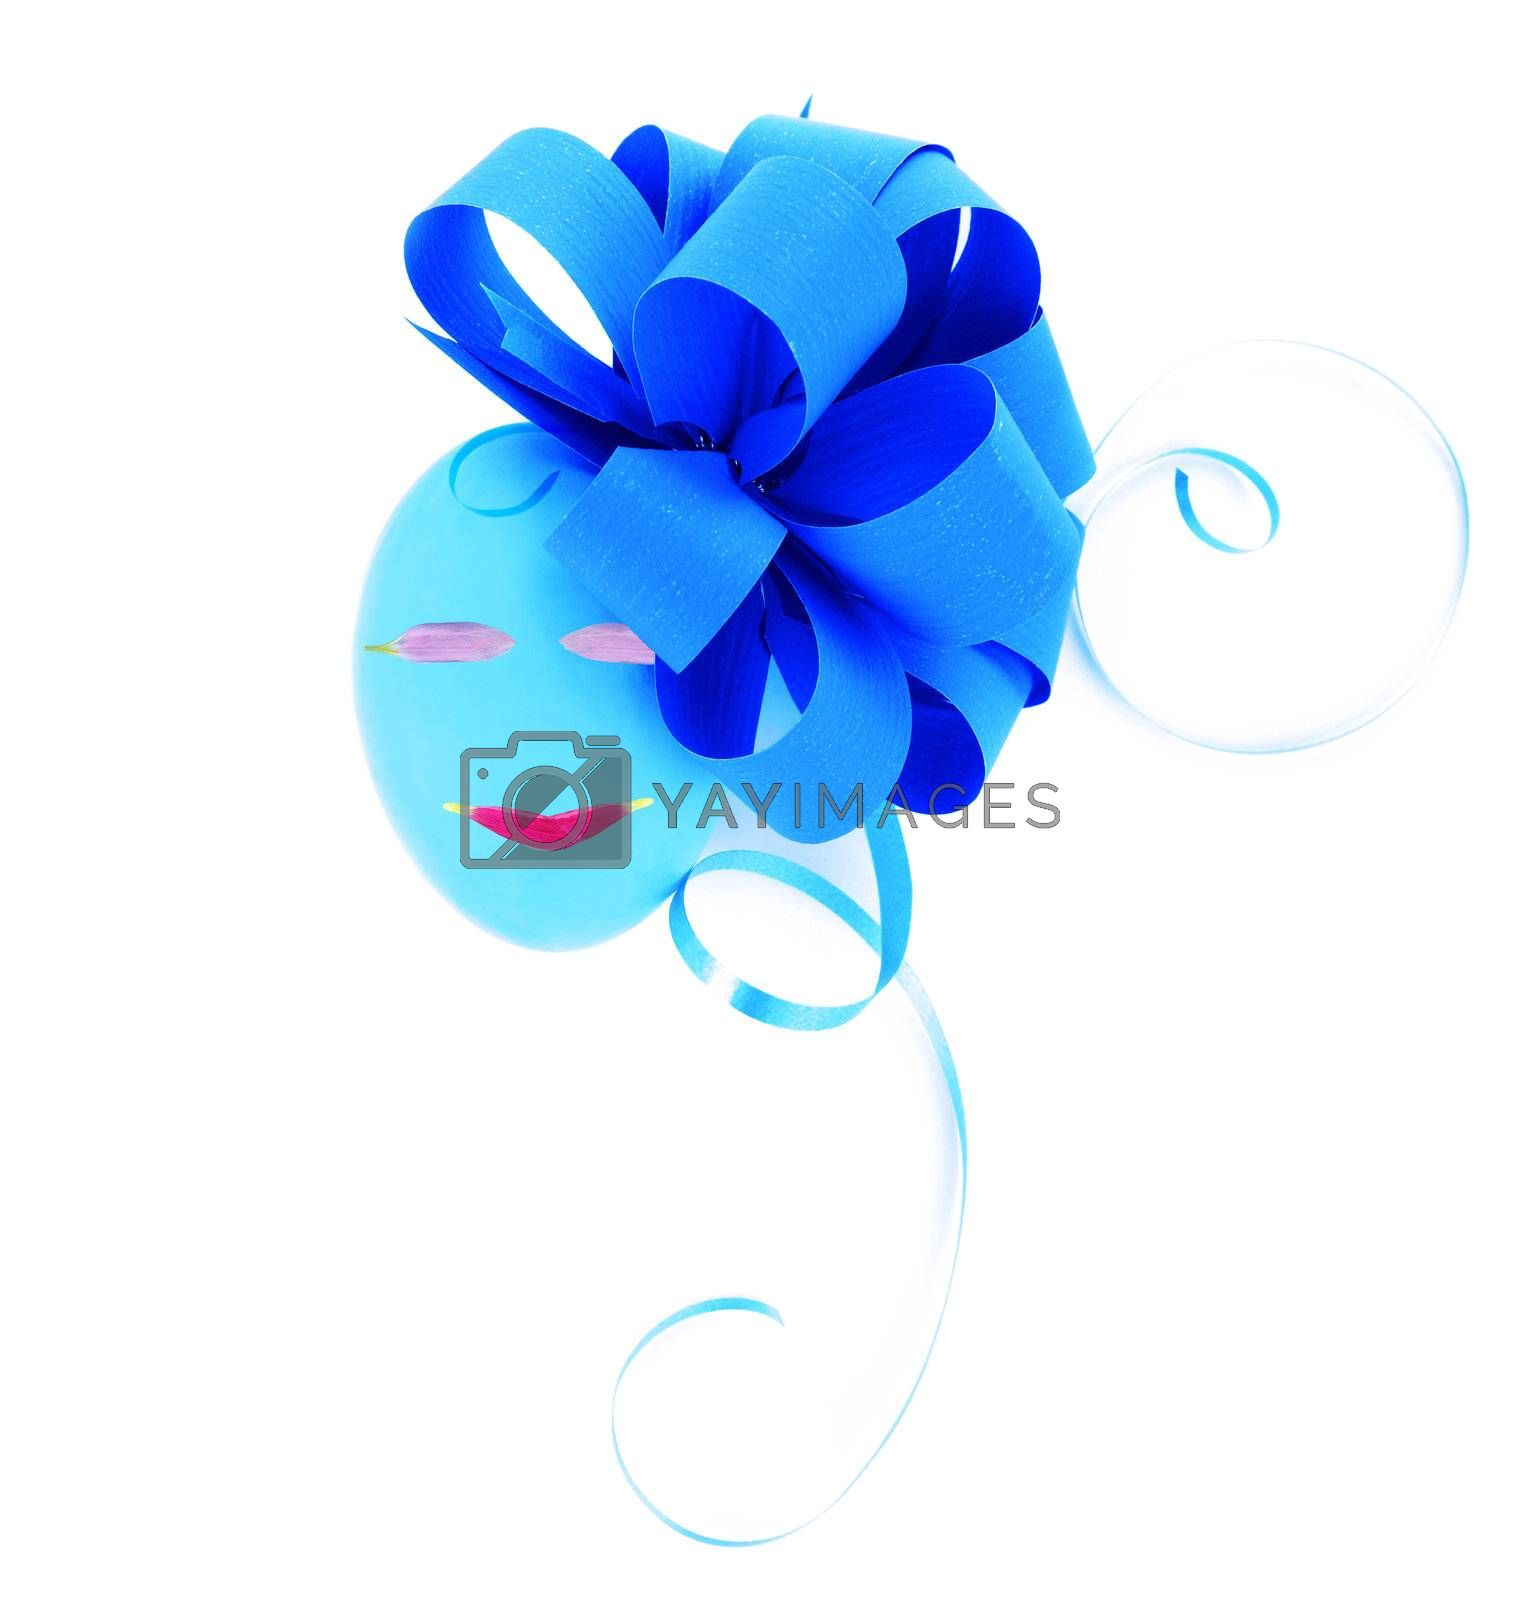 Easter egg decorated with festive blue bow isolated on white background